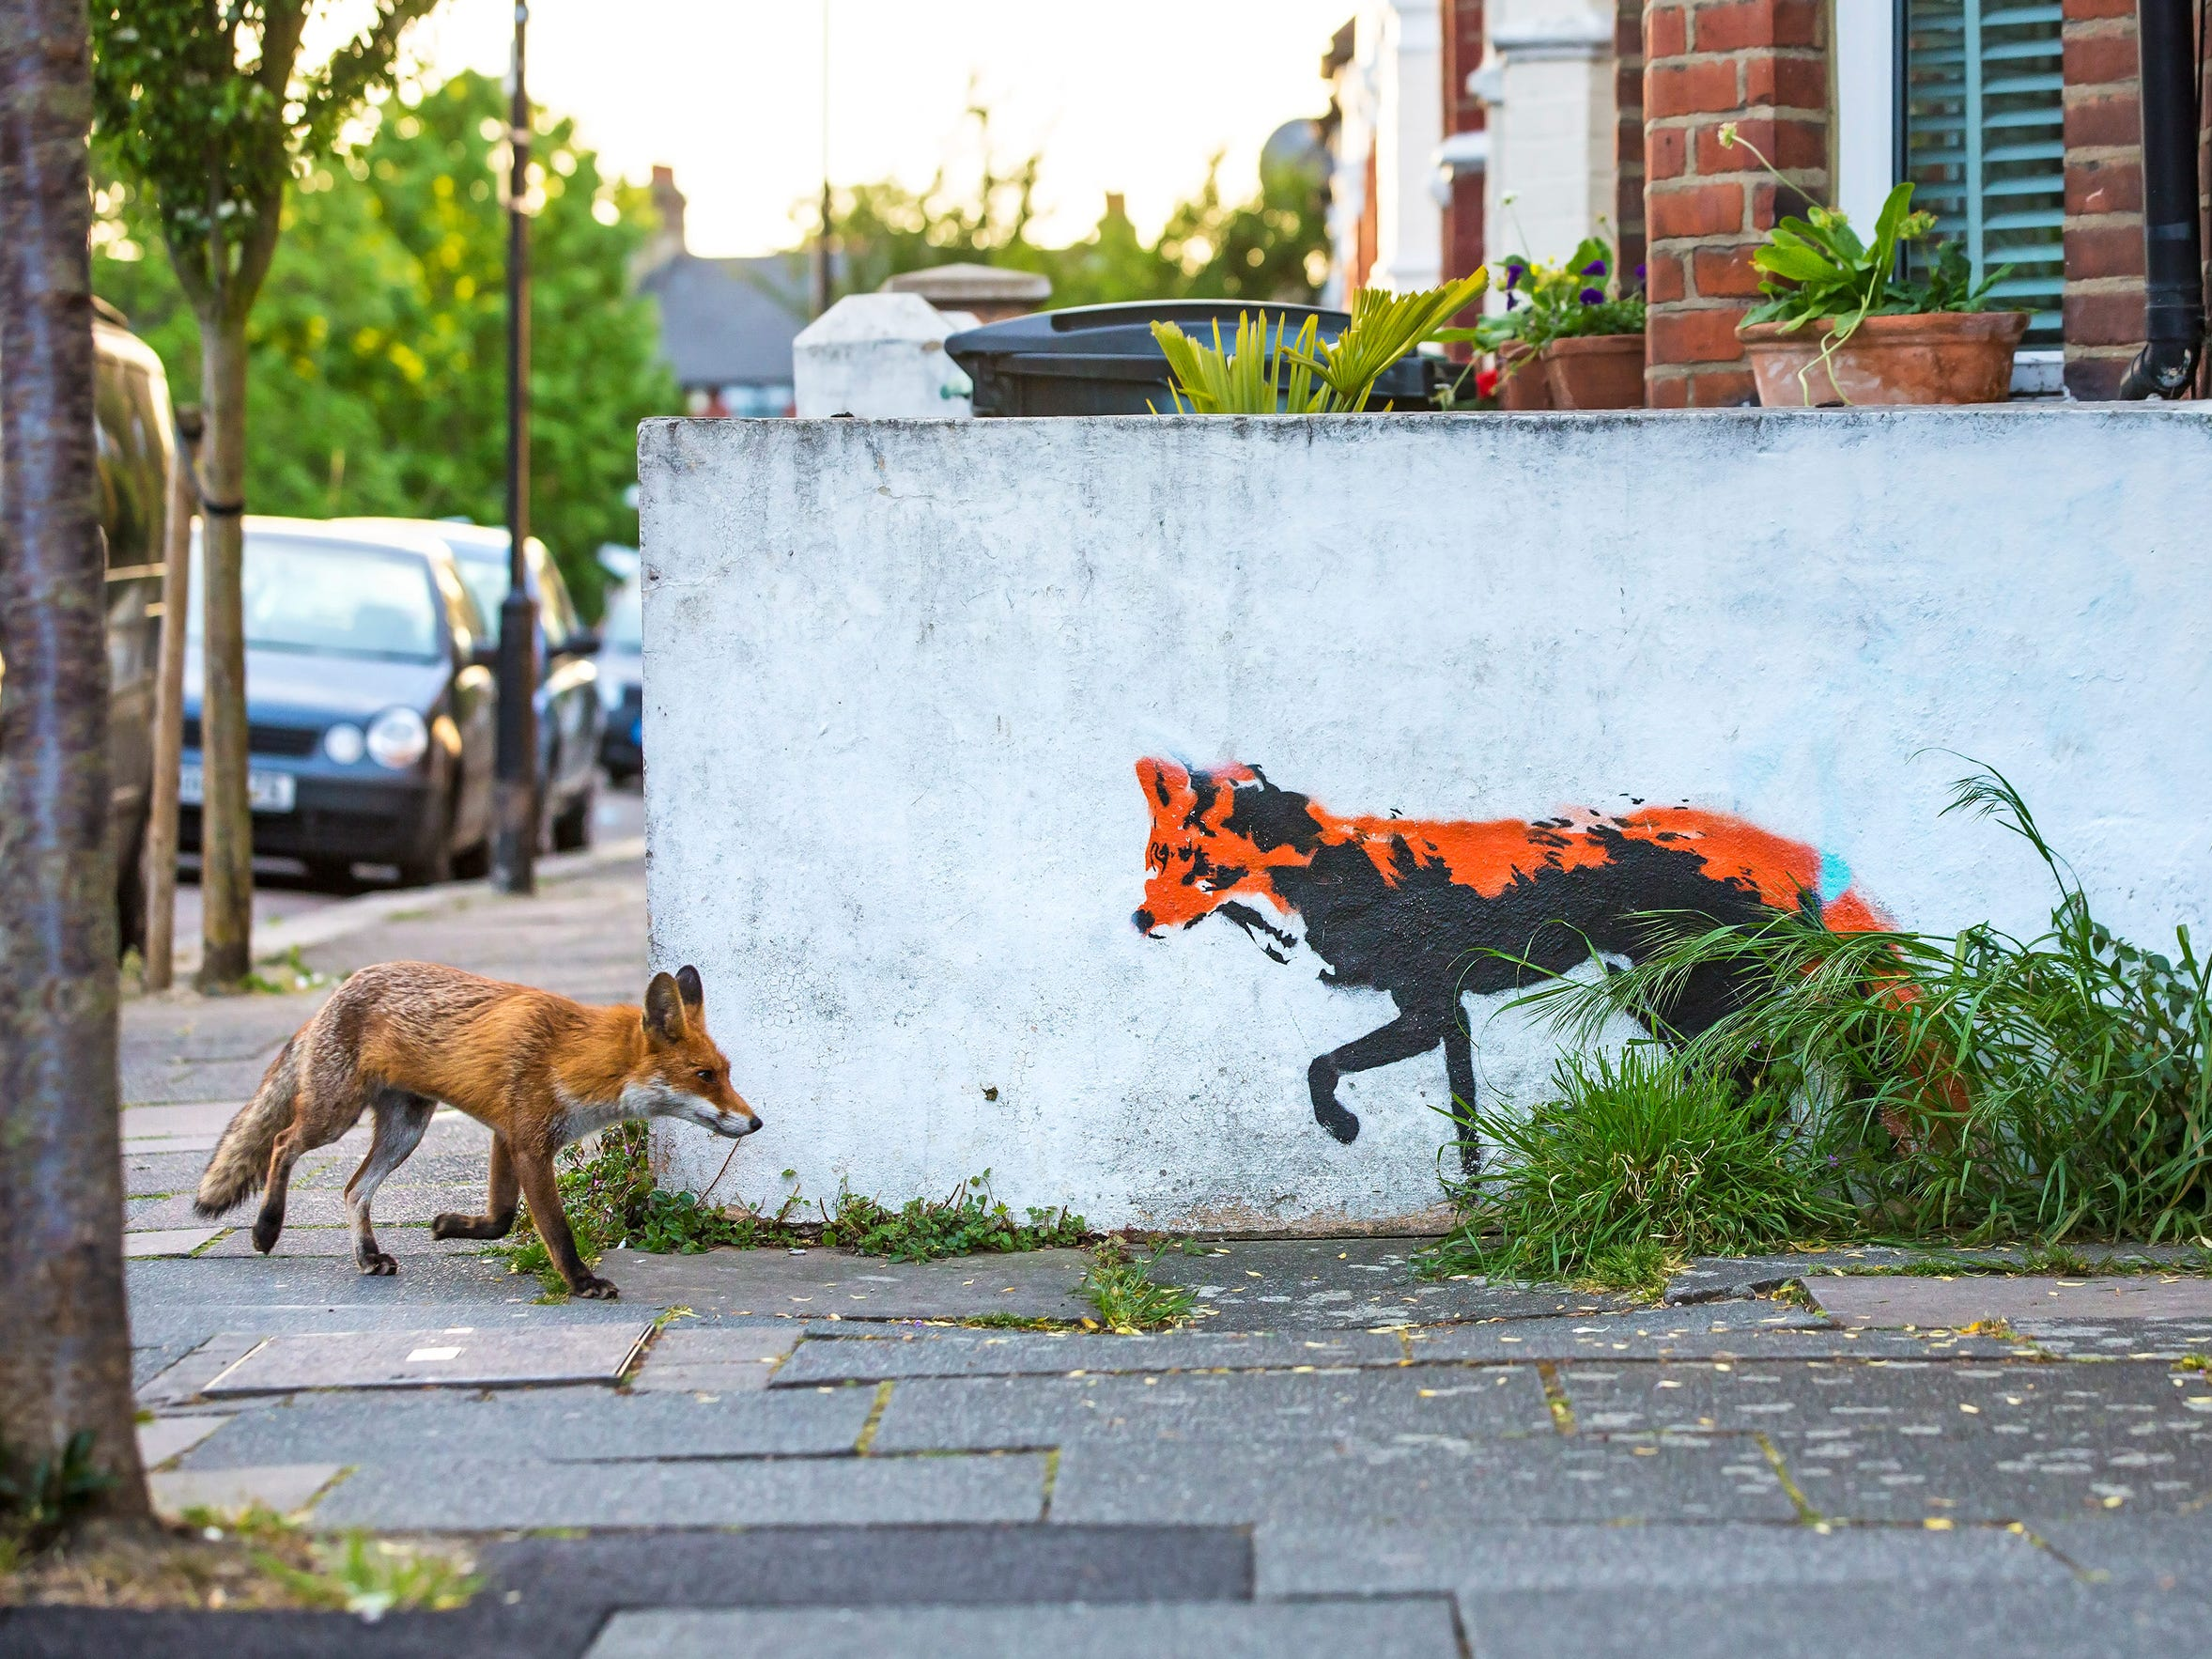 Fox Meets Fox by Matthew Maran, UK -- Matthew has been photographing foxes close to his home in north London for over a year and ever since spotting this street art had dreamt of capturing this image. After countless hours and many failed attempts his persistence paid off. -- Canon EOS 5D Mark III + 70-200mm f2.8 IS II USM lens; 1/500 sec at f4.0; ISO 800.